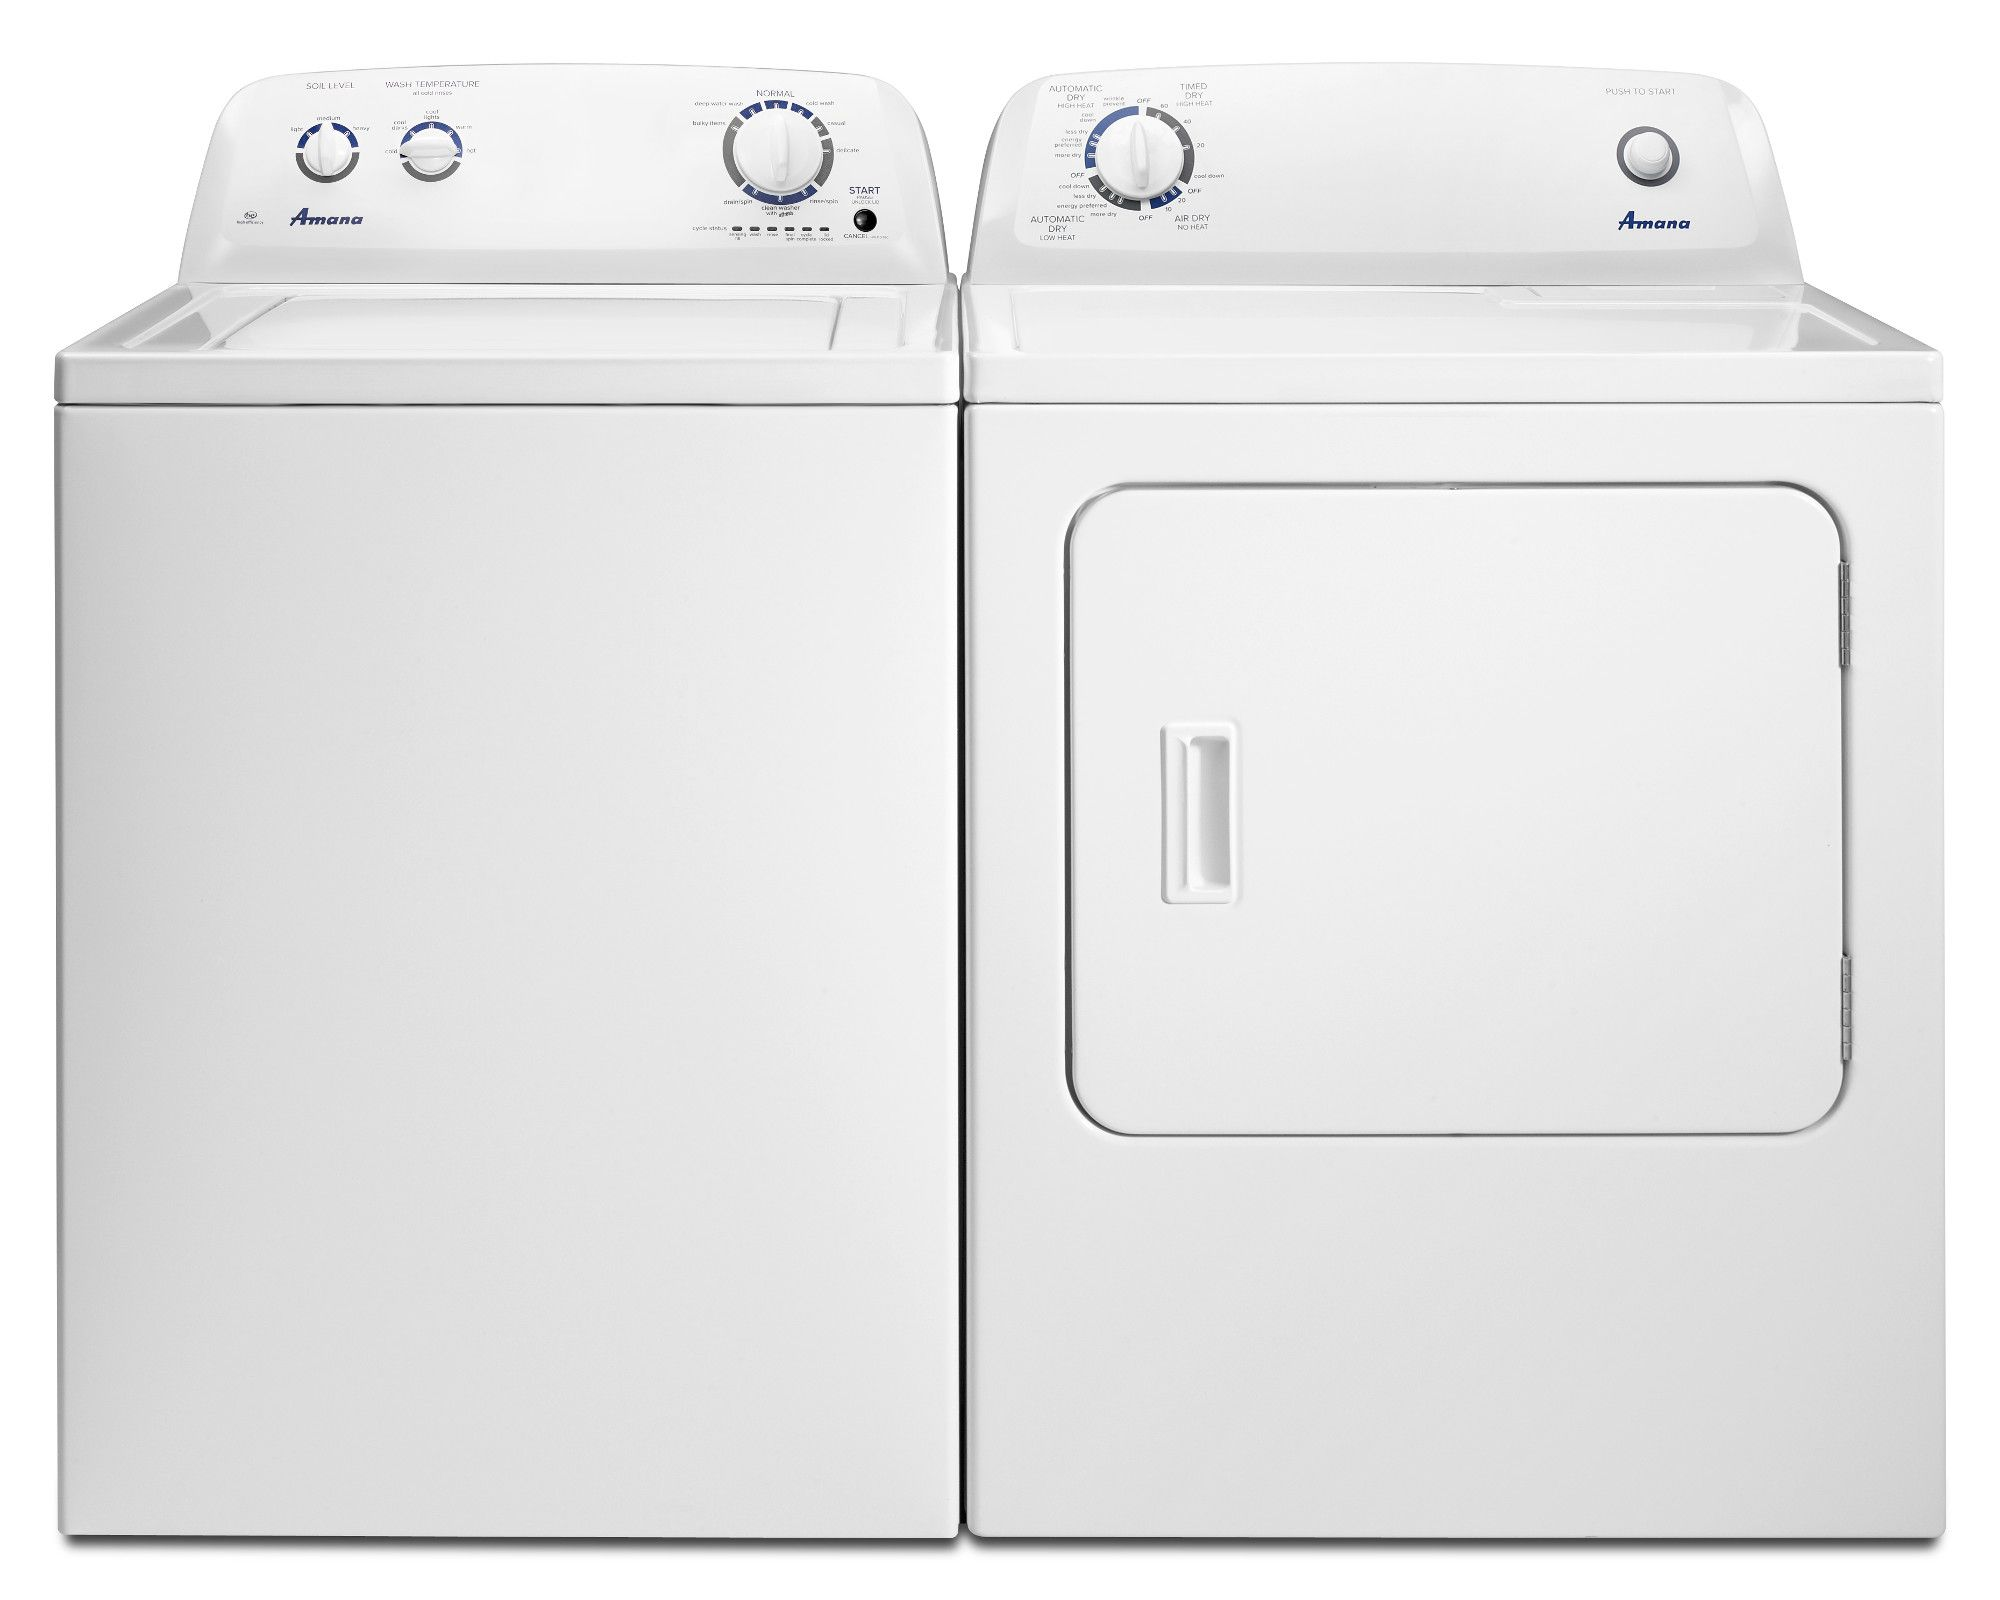 Best Washer And Dryer 2020.The 9 Best Washer Dryer Sets Of 2019